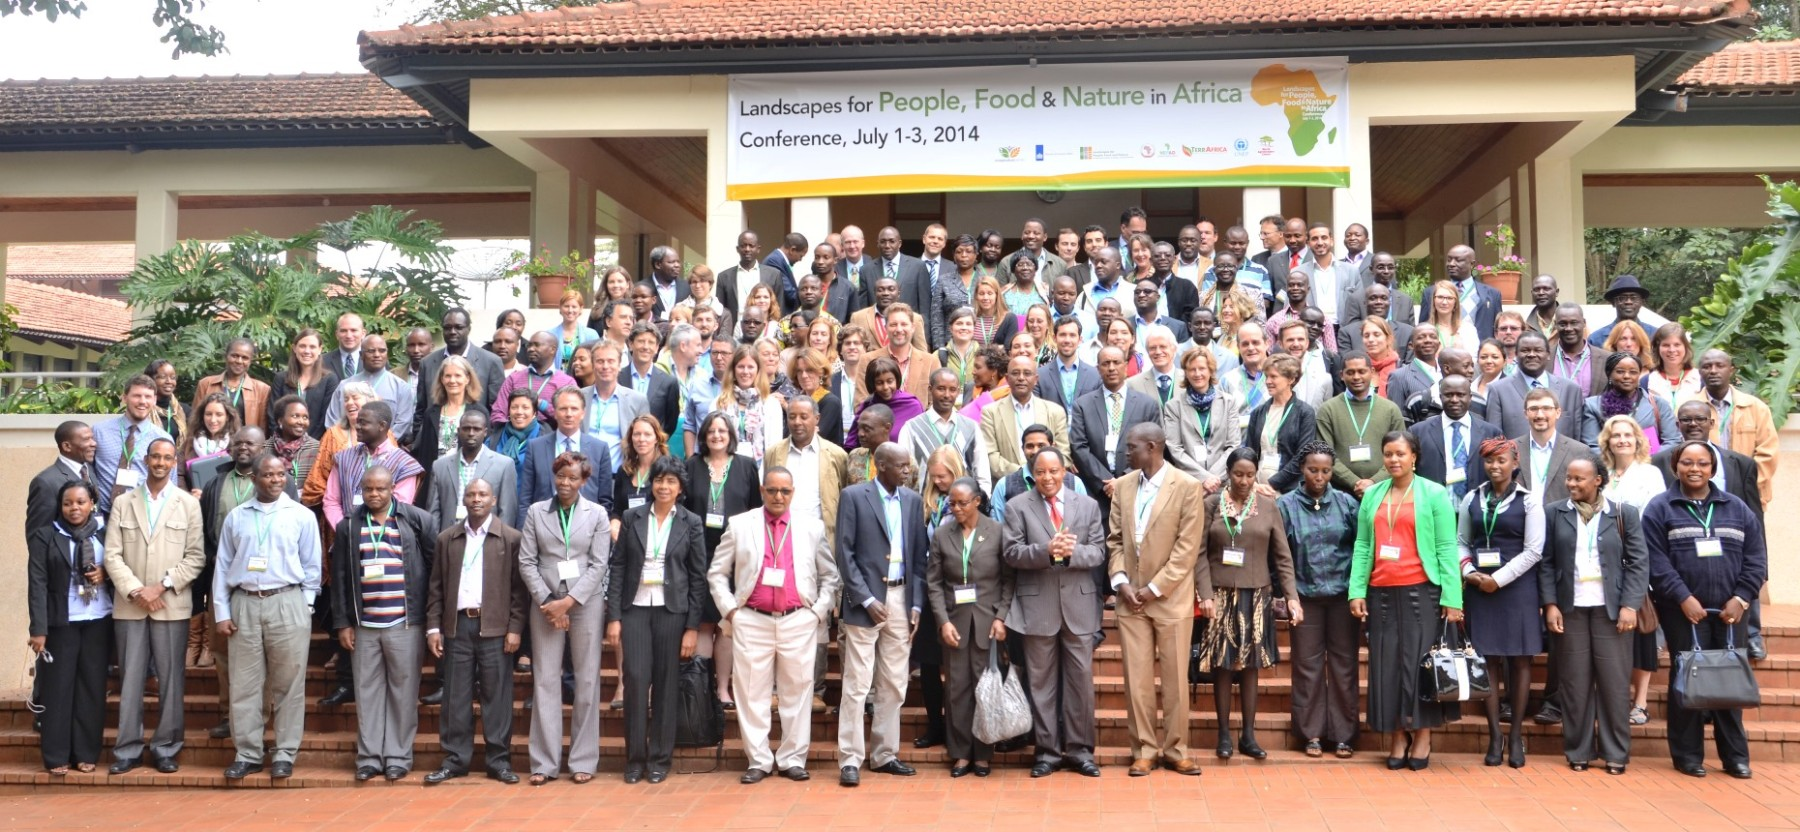 Over a hundred practitioners of the landscape approach convened in 2014 to discuss how the landscape approach advances social, environmental, and economic goals in African landscapes.